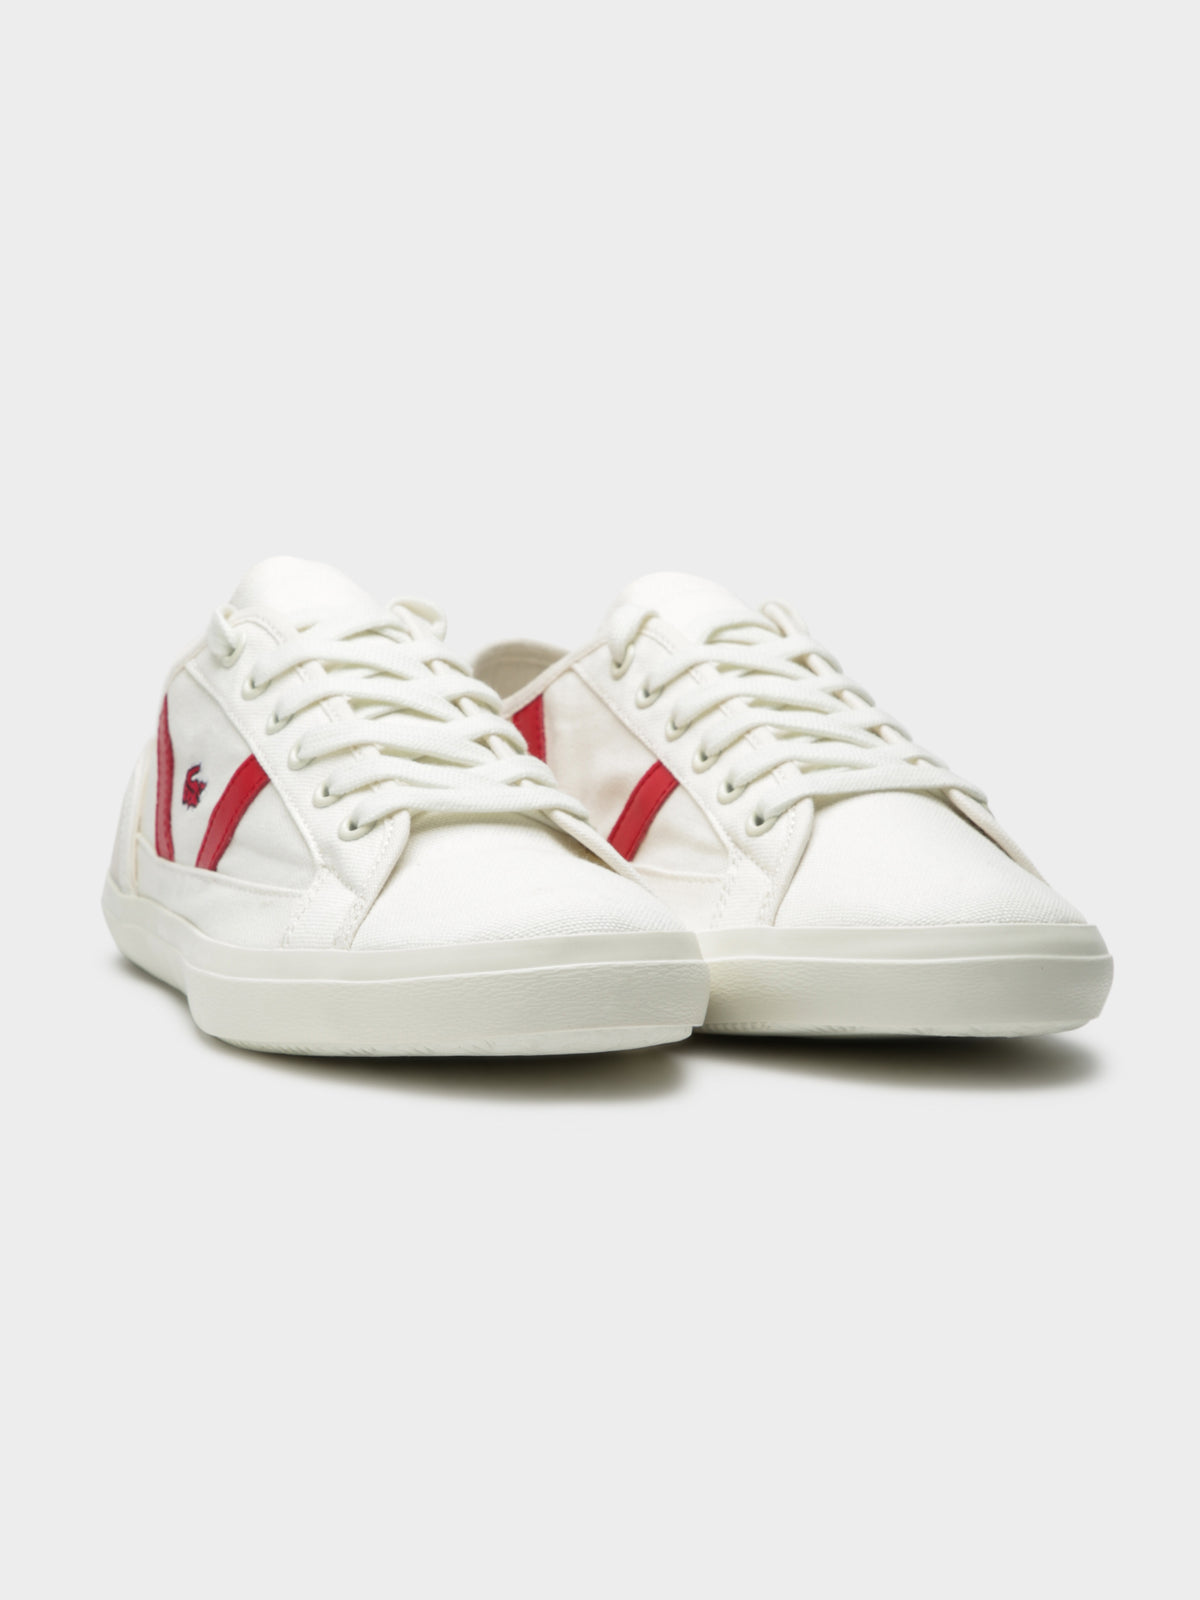 Womens Sideline 119 1 CFA Sneakers in Off White & Red